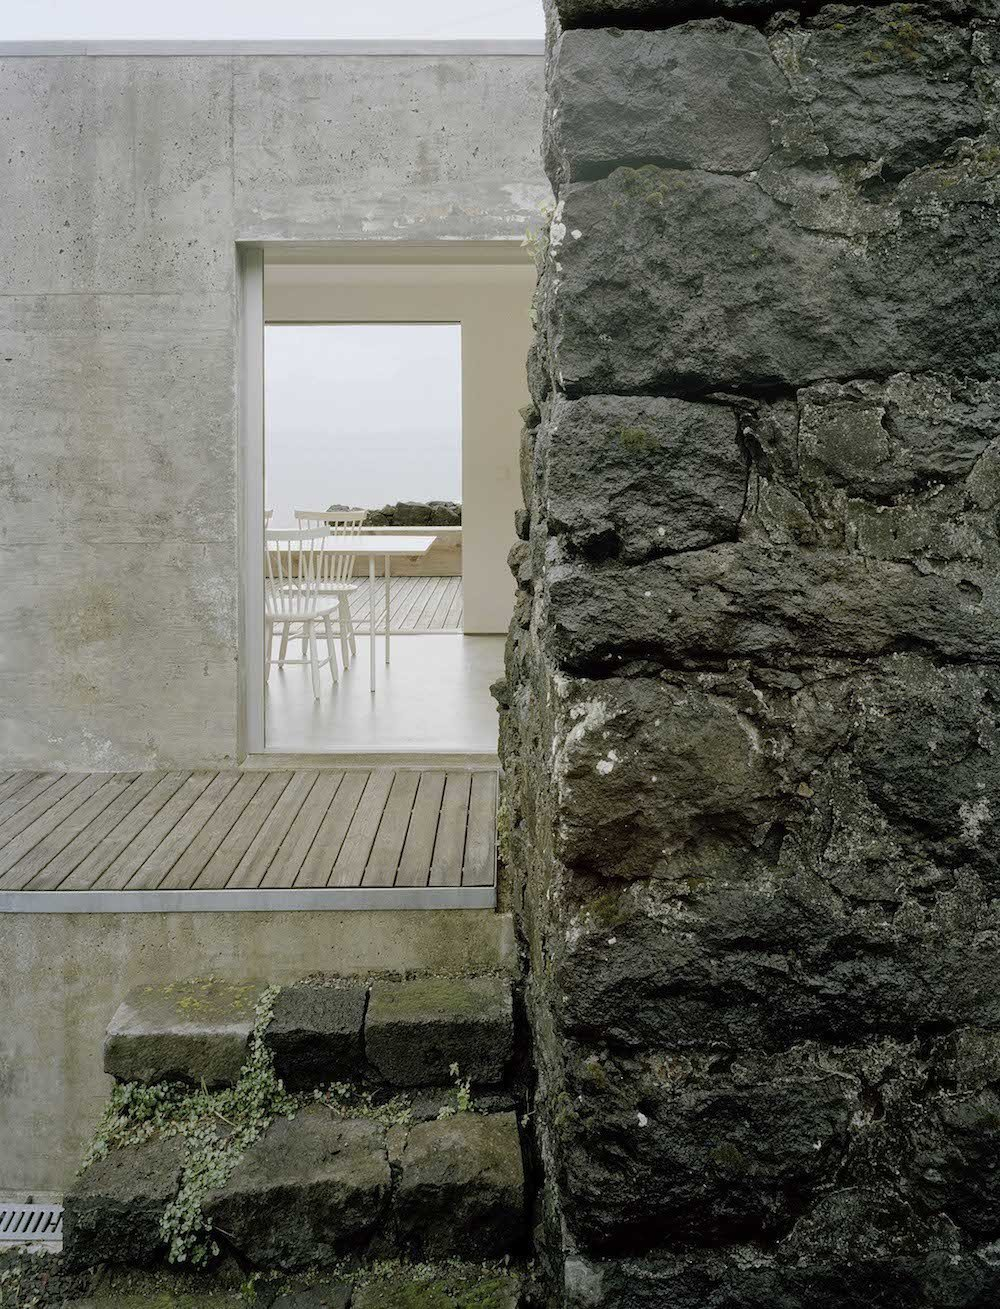 Strategic openings on the ground floor provide a clear view of the ocean.  This Modern Coastal Escape Sits Within 18th-Century Stone Walls by Patrick Sisson